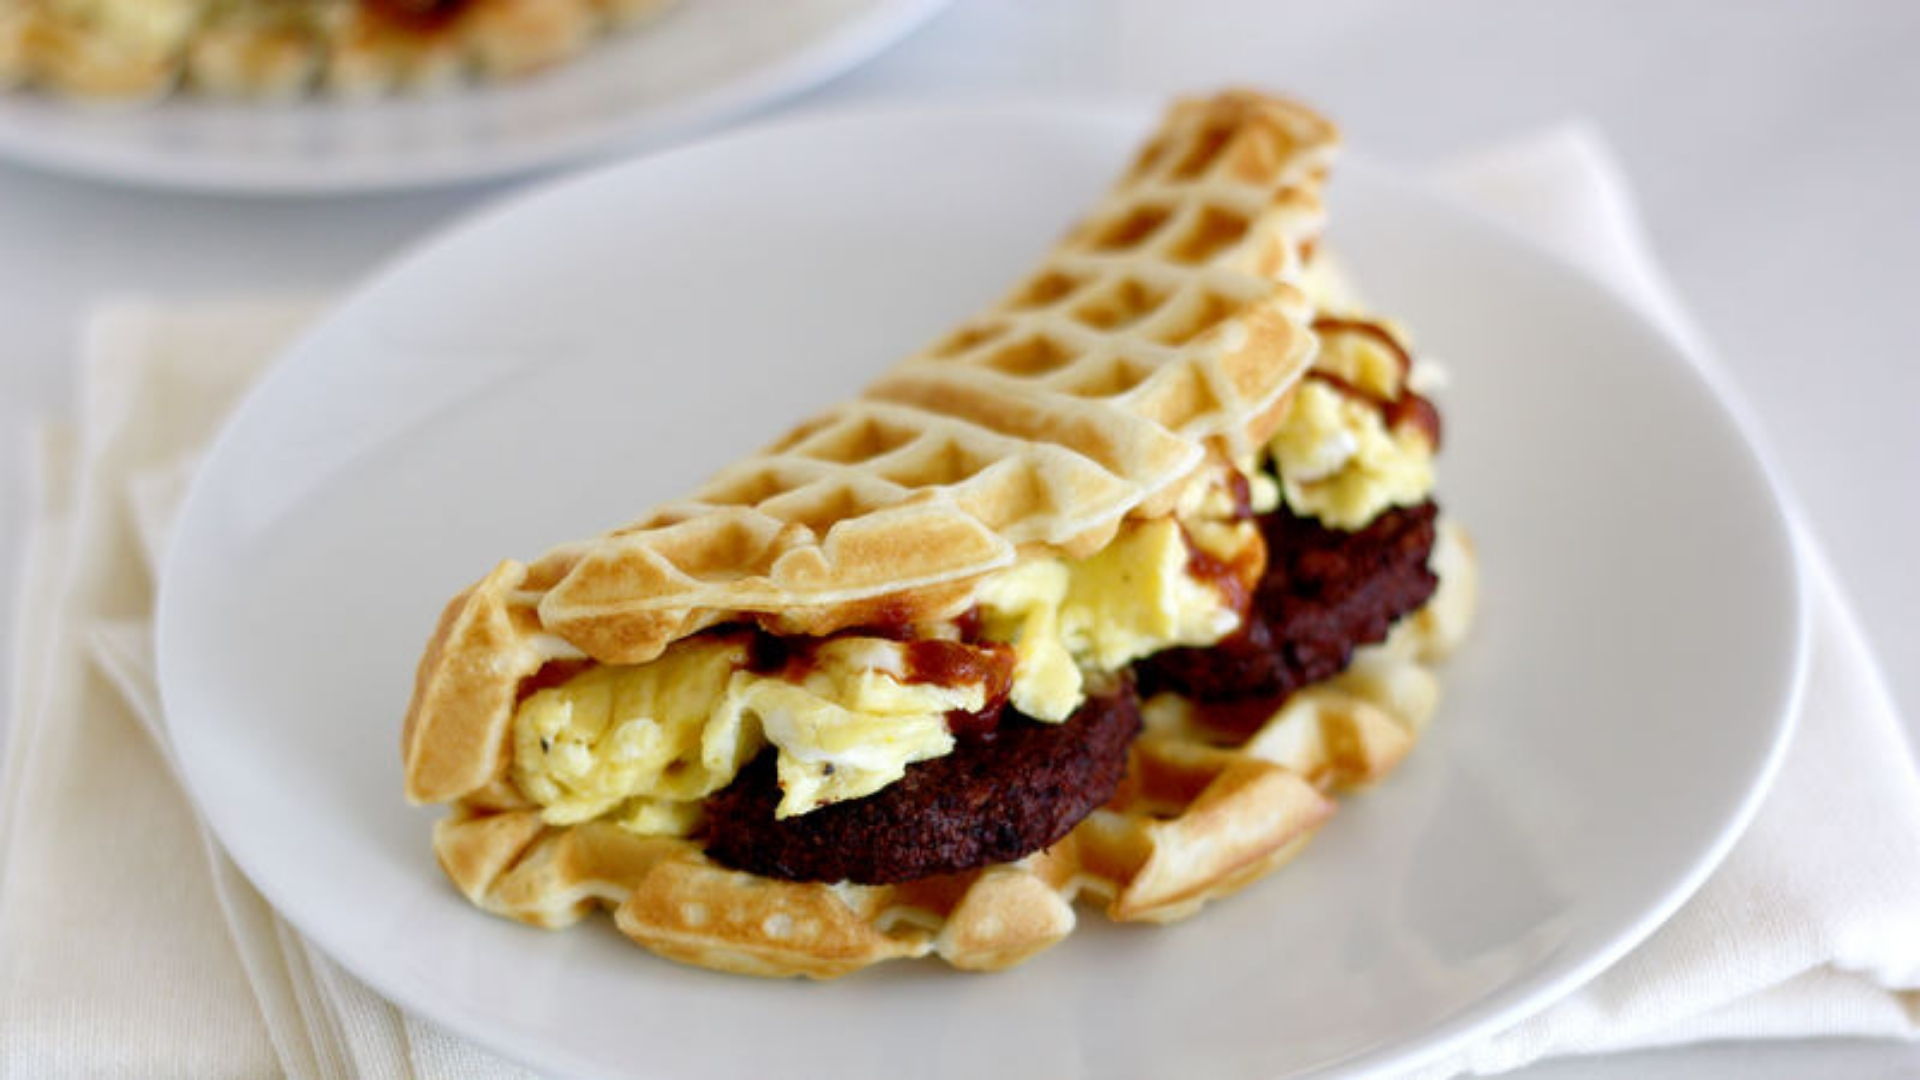 8 Must Try Unique Waffle Flavors